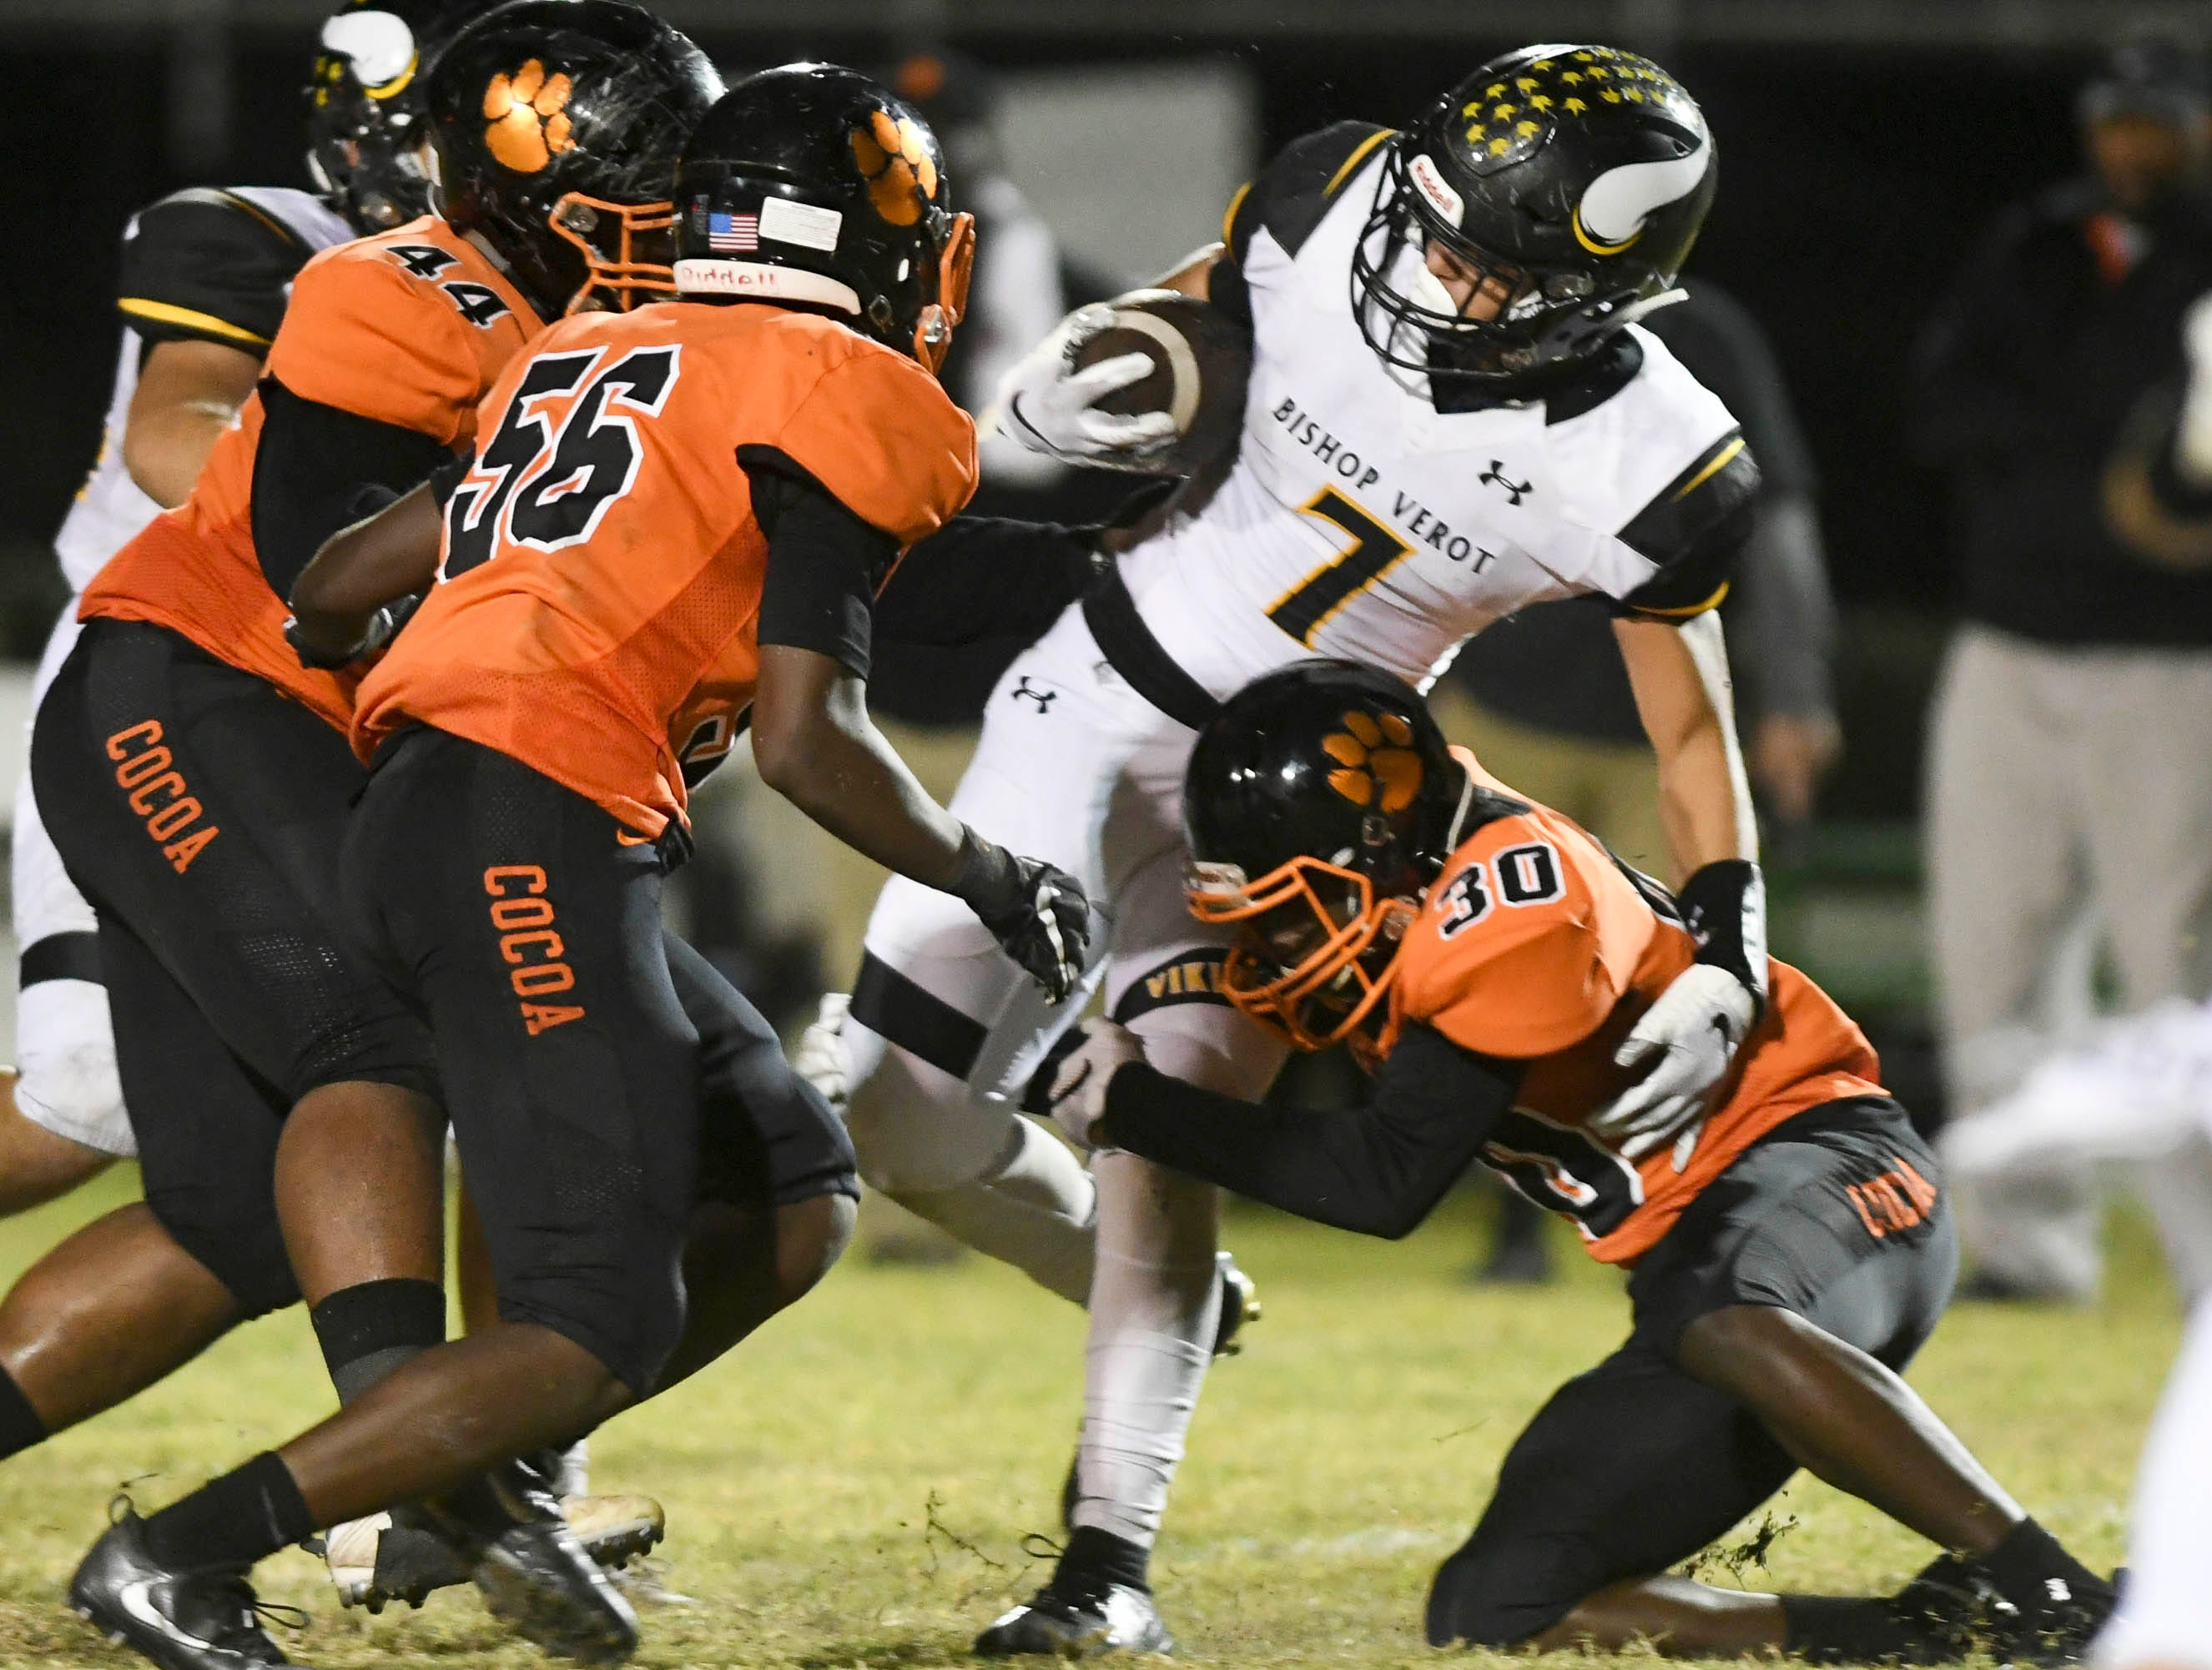 Dominic Febles of Bishop Verot (7) is tackled by Dajavon White (44) AJ Williams (56) and Ja'Quez Hicks of Cocoa during Friday's regional final at Blake Stadium.